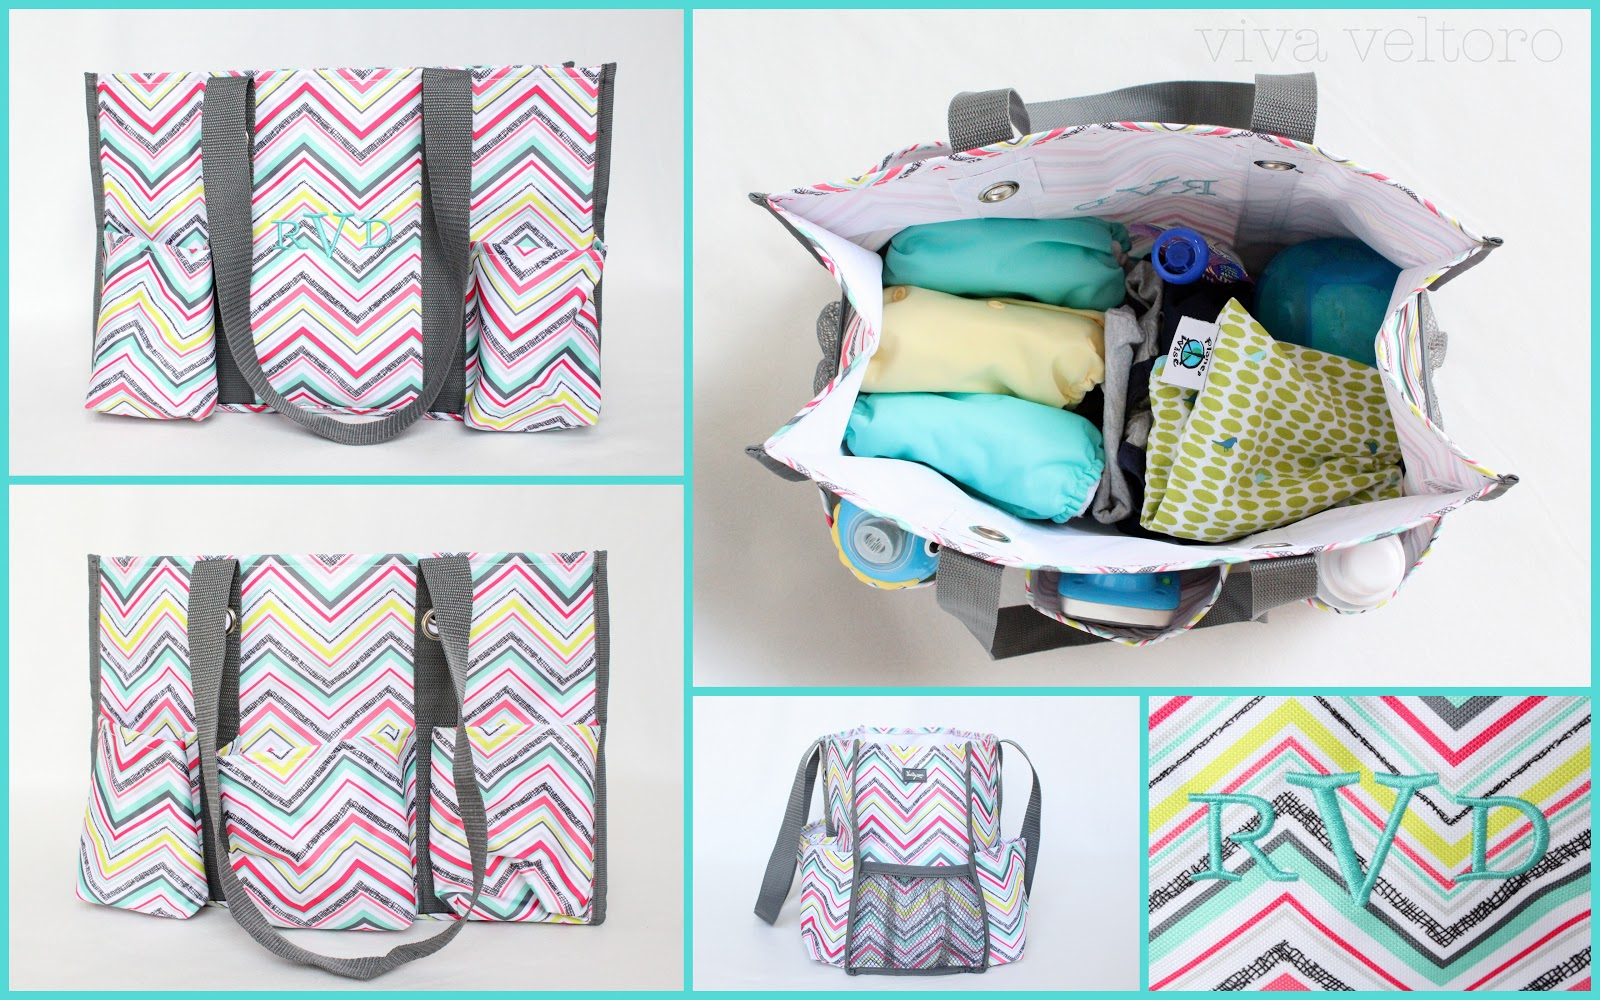 Thirty One Gifts Organizing Utility Tote And Thermal Review